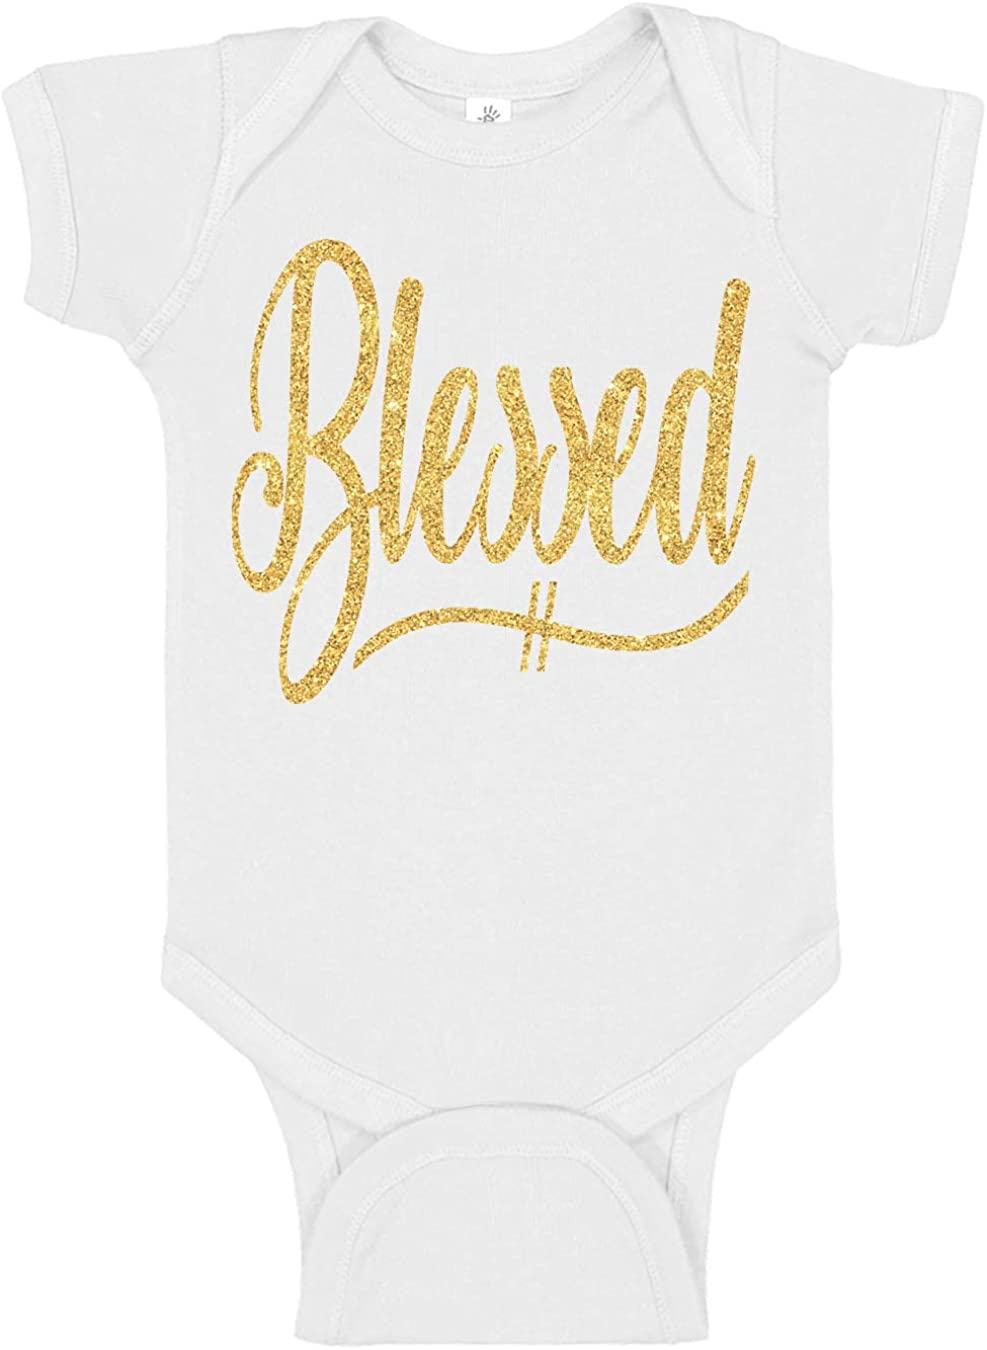 Reaxion Max 79% OFF Aiden's Corner - Handmade Gold Blessed White Max 90% OFF or Bodysuit